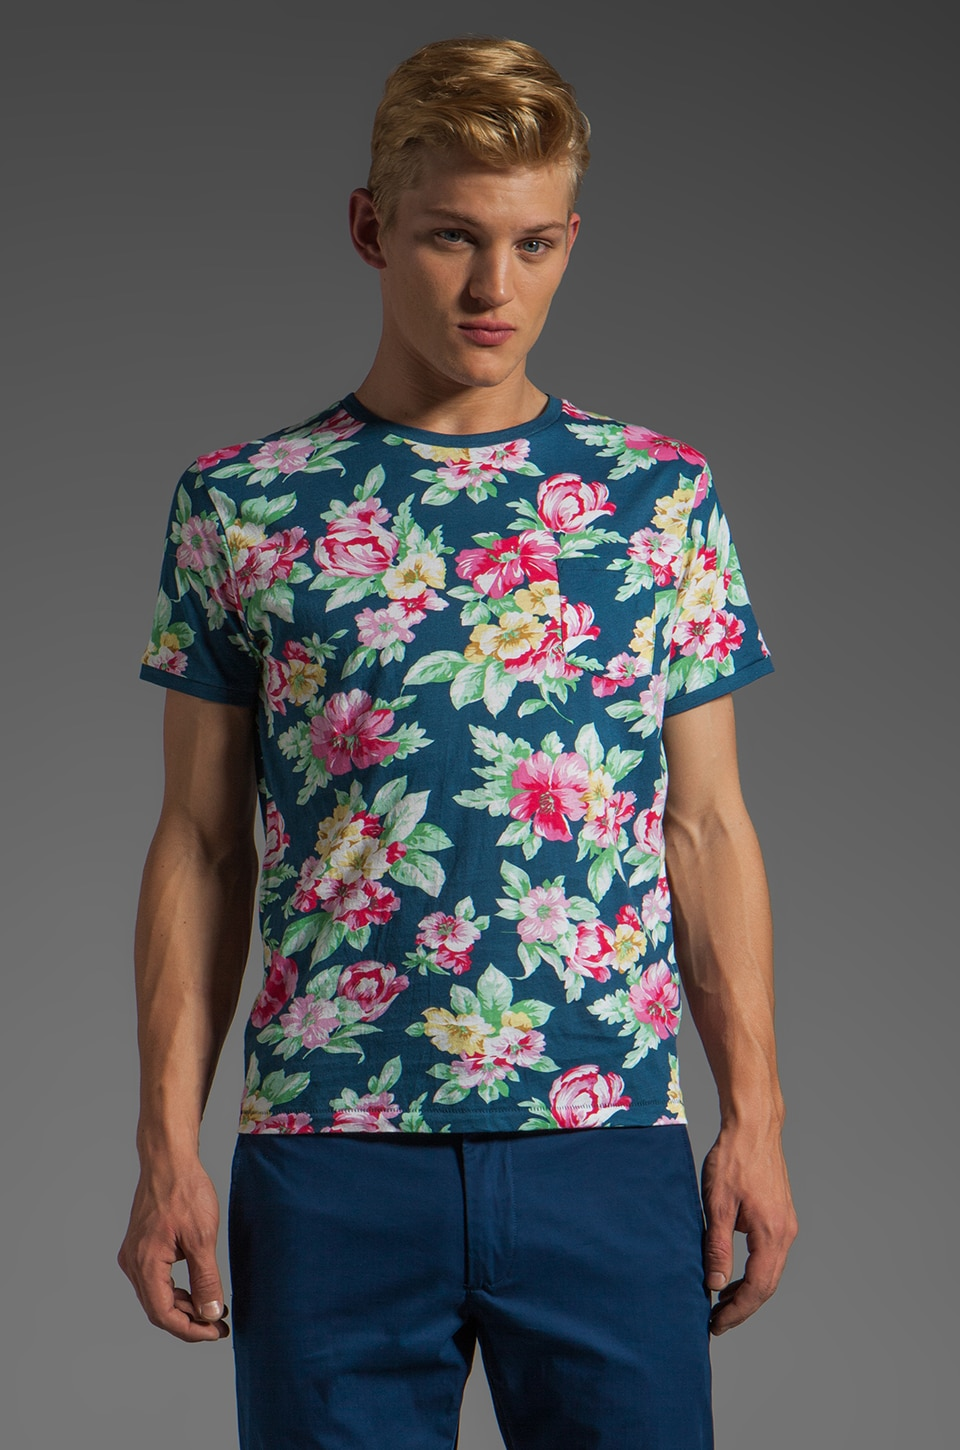 GANT Rugger Flower Tee in Multi